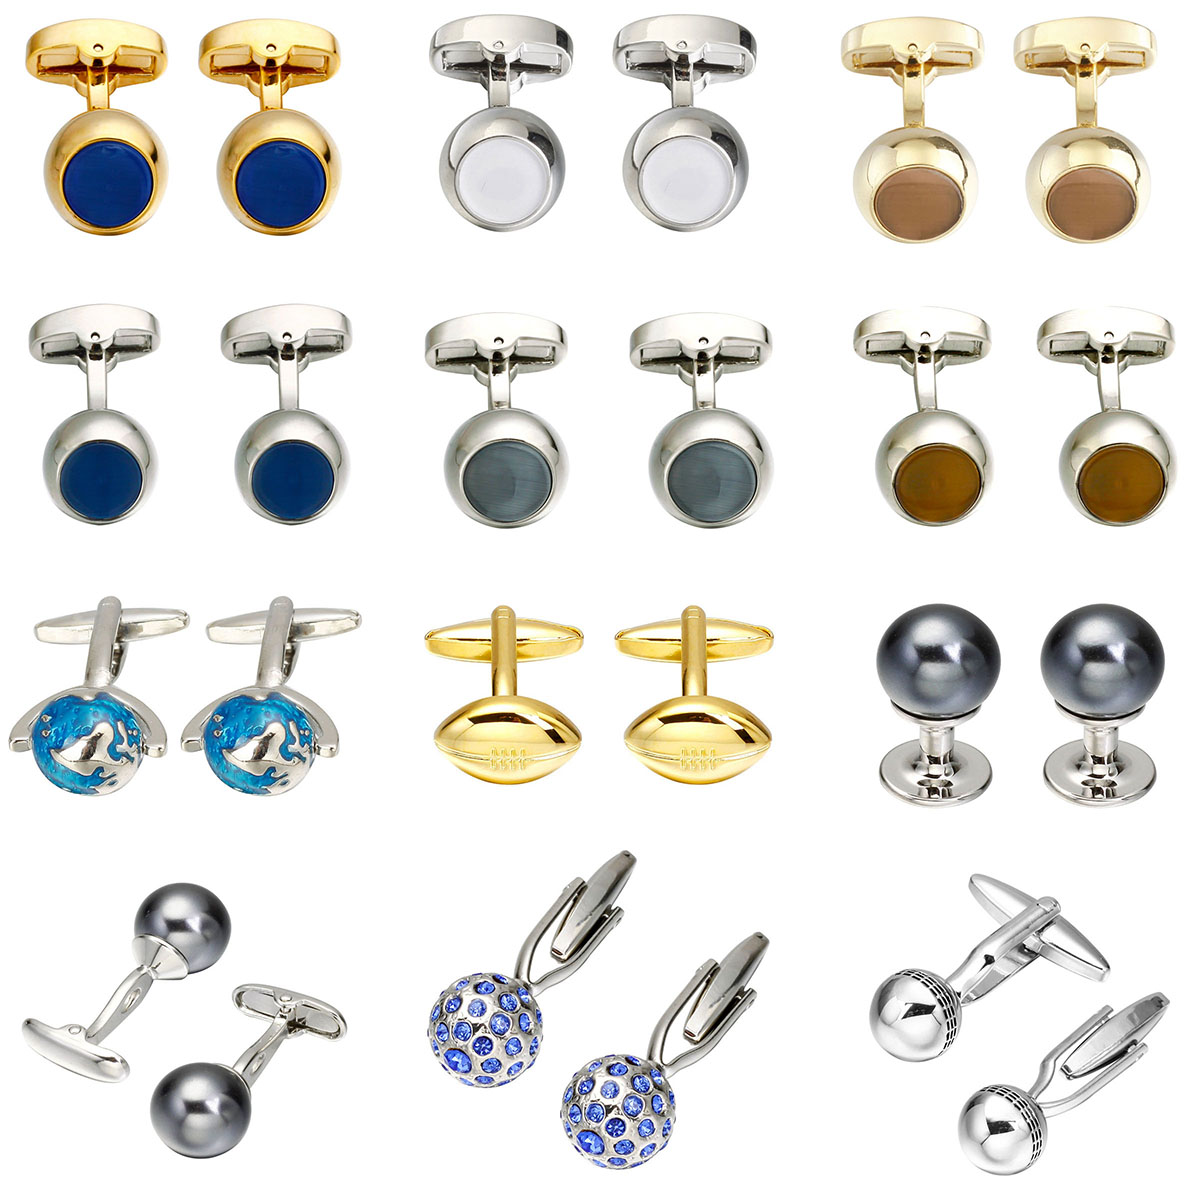 Novelty Fashion Shirt Cufflink Metal Knot/Bee/Capsule/Beard/Baseball/Umbrella Cufflinks For Mens Copper Material Cuff Links